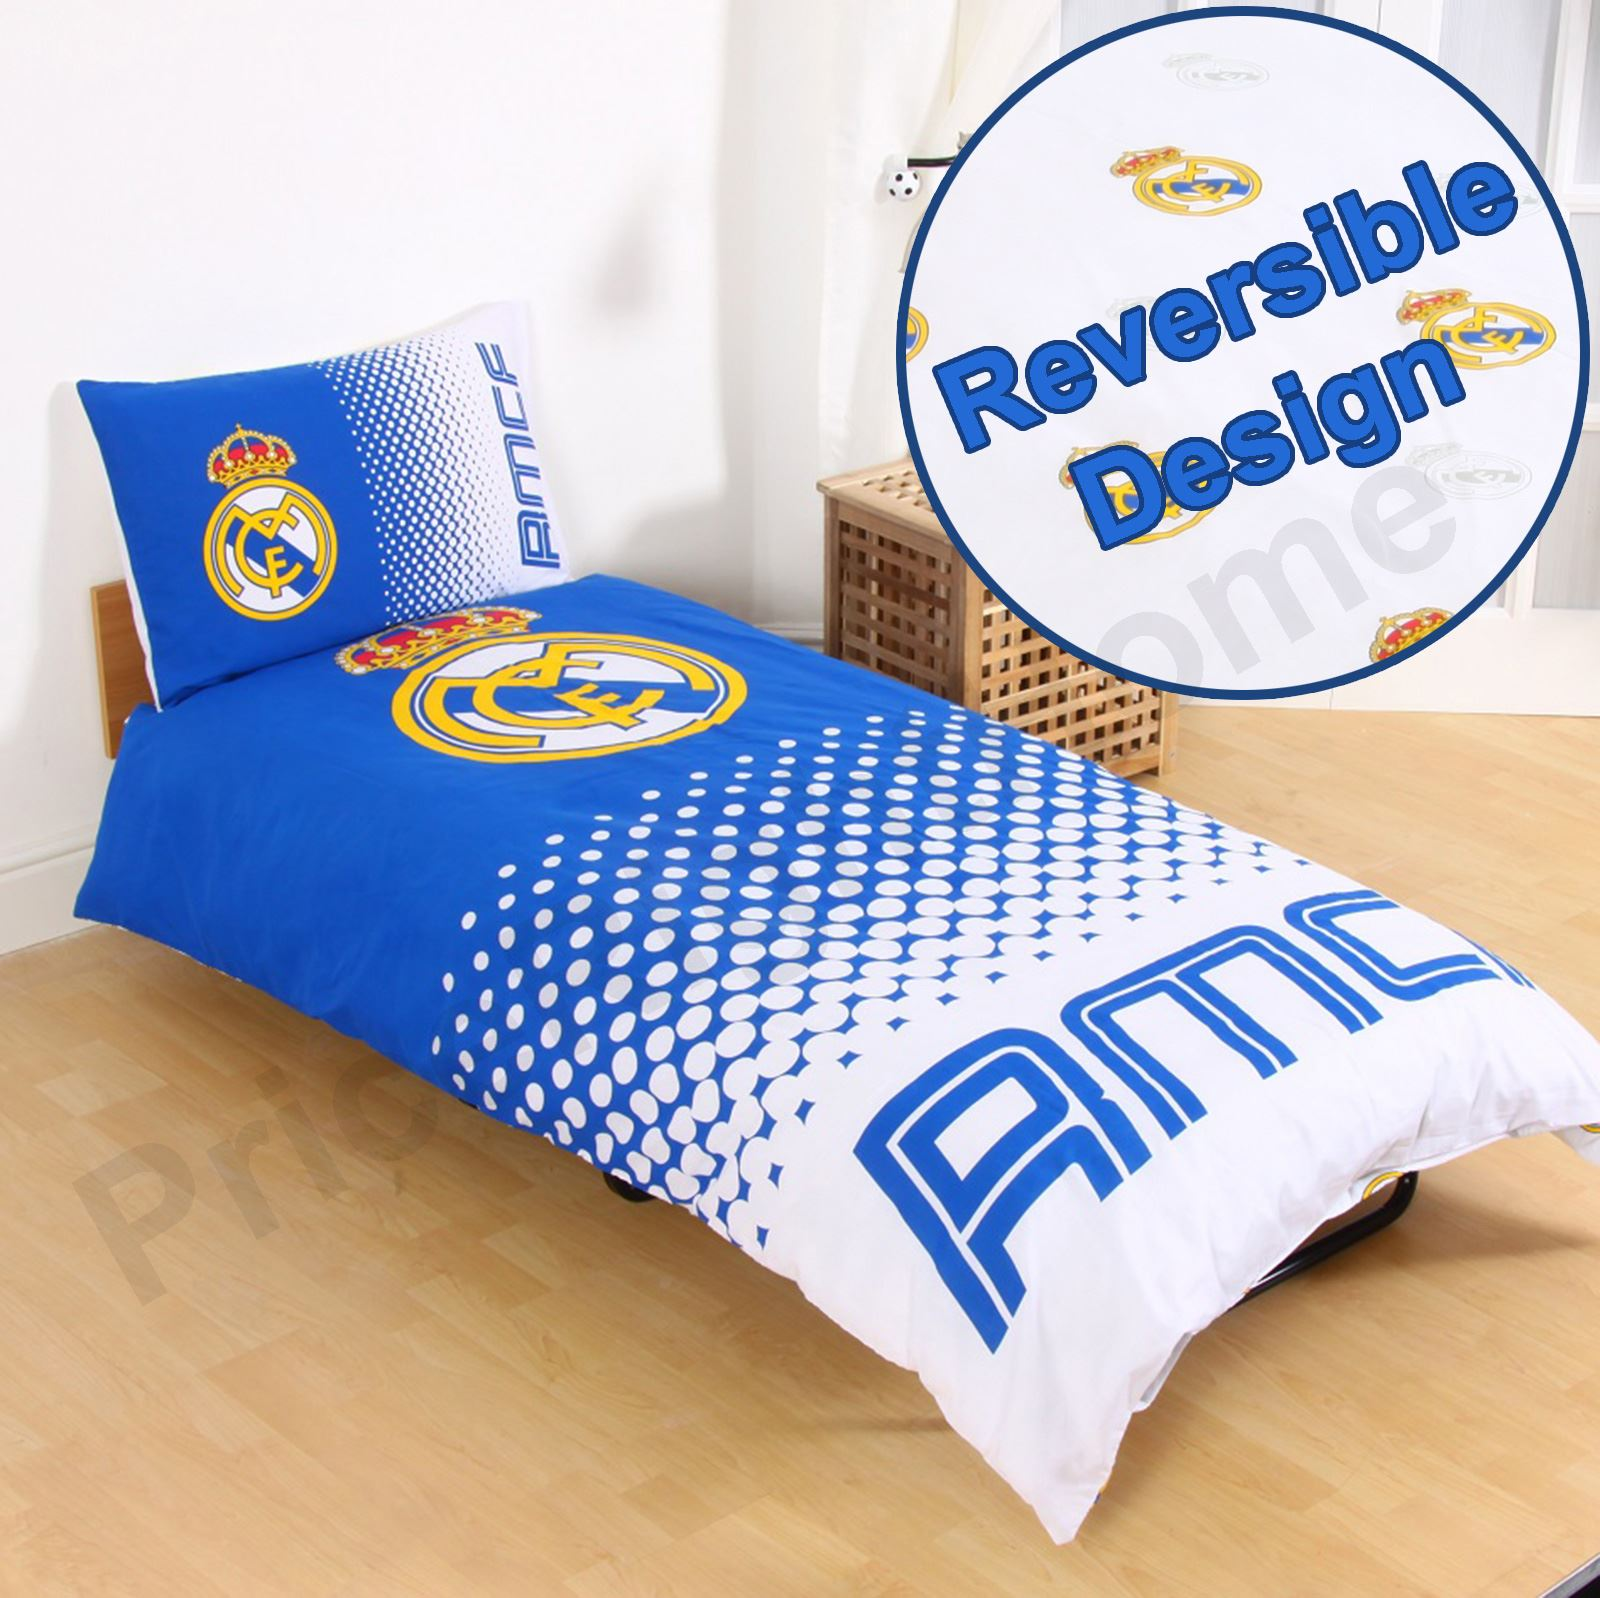 REAL MADRID BEDDING AND BEDROOM ACCESSORIES FOOTBALL BOYS. REAL MADRID BEDDING AND BEDROOM ACCESSORIES FOOTBALL BOYS OFFICIAL